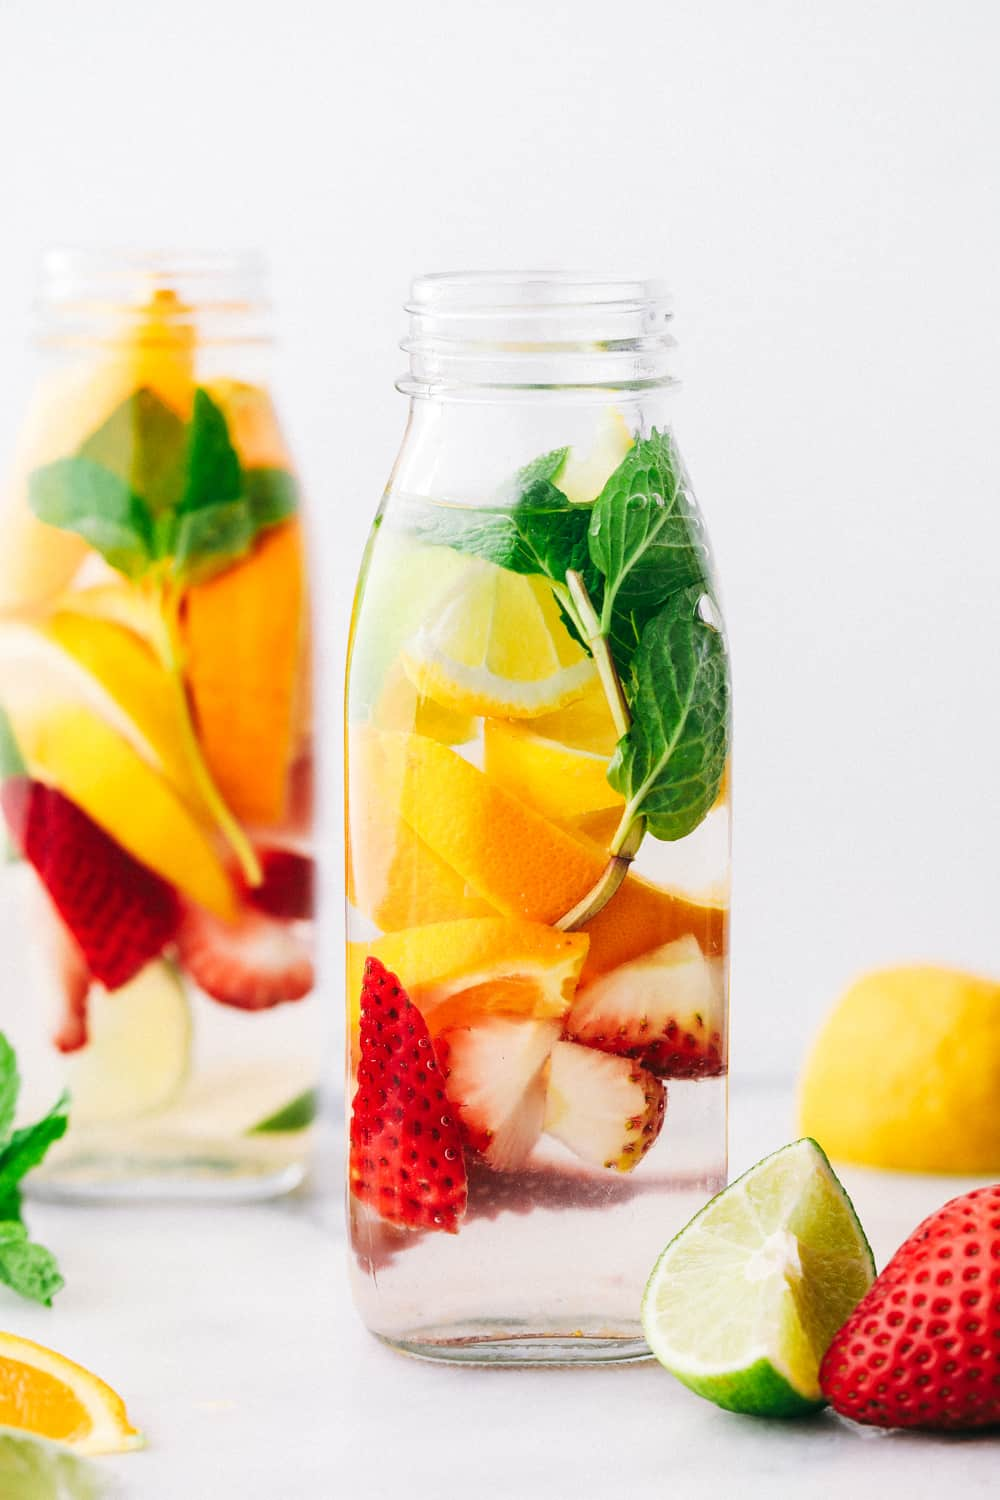 Detox water in a glass jar filled with lemon, limes, strawberries and mint.